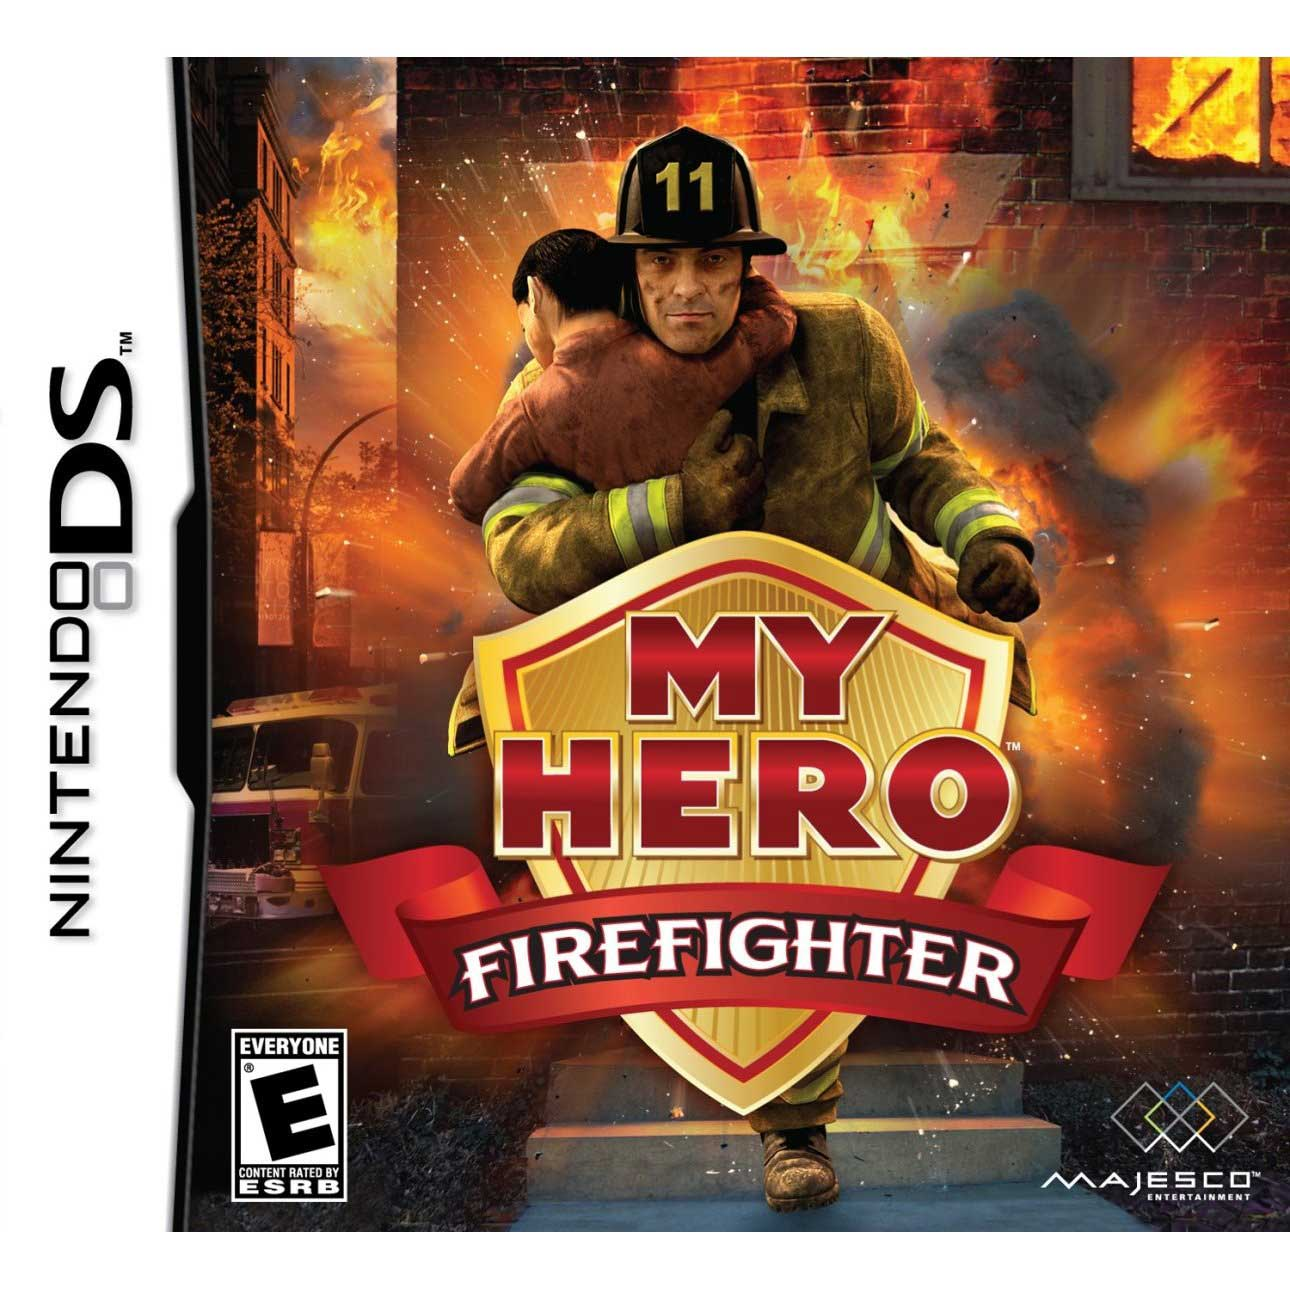 firehouse games